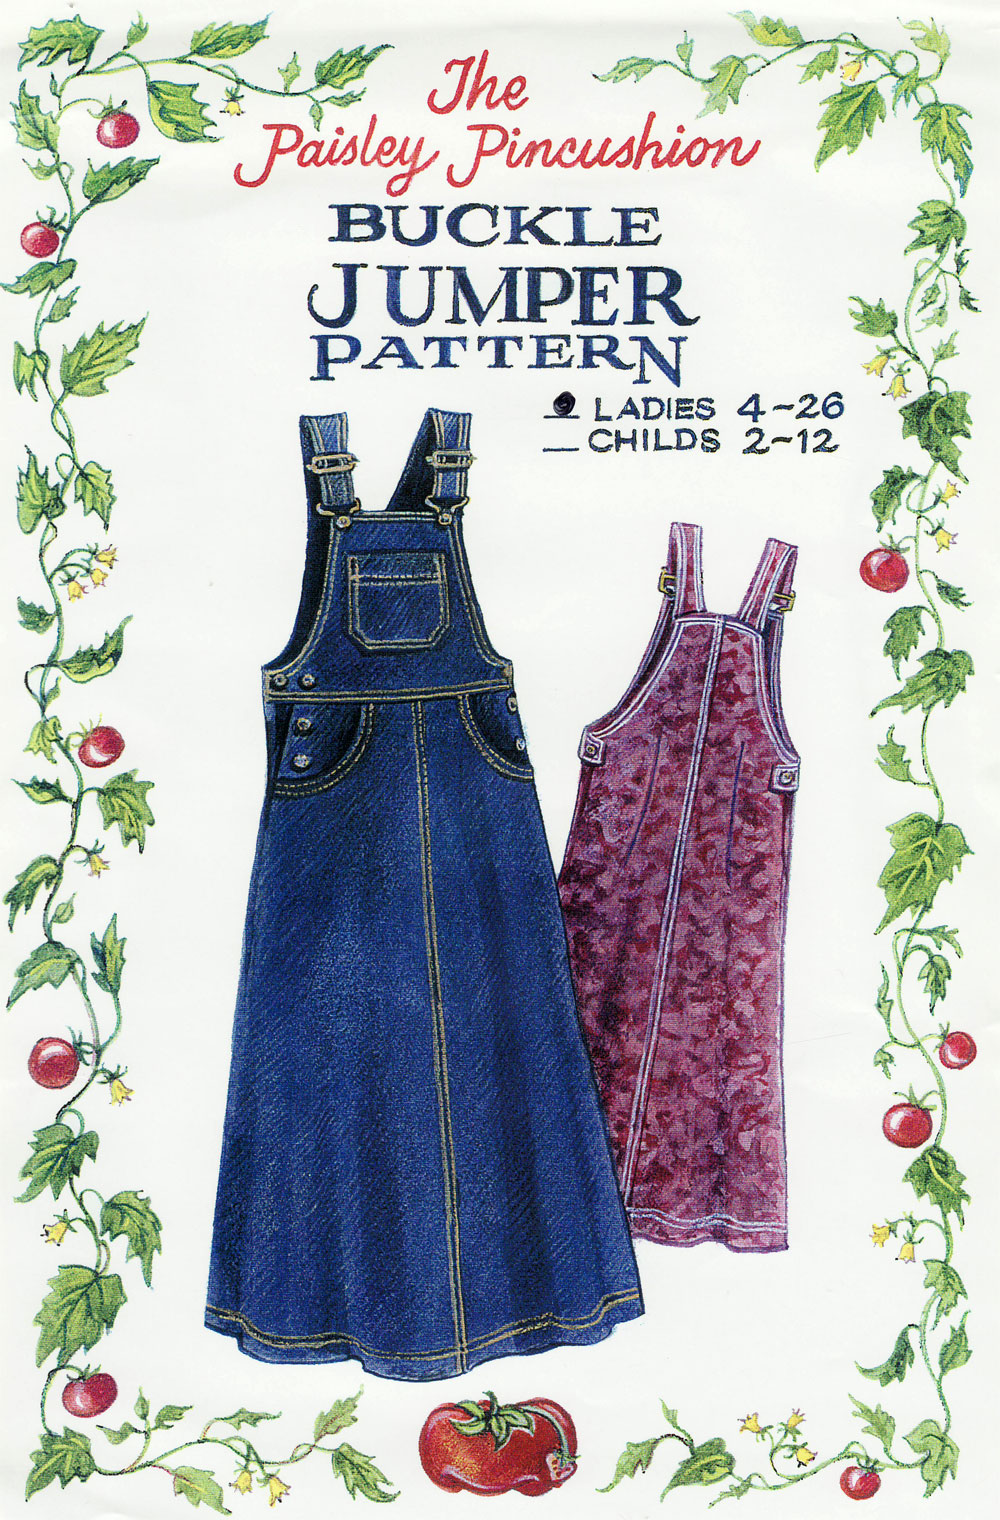 buckly-jumper-ladies-apron-sewing-pattern-The-Paisley-Pincushion-front